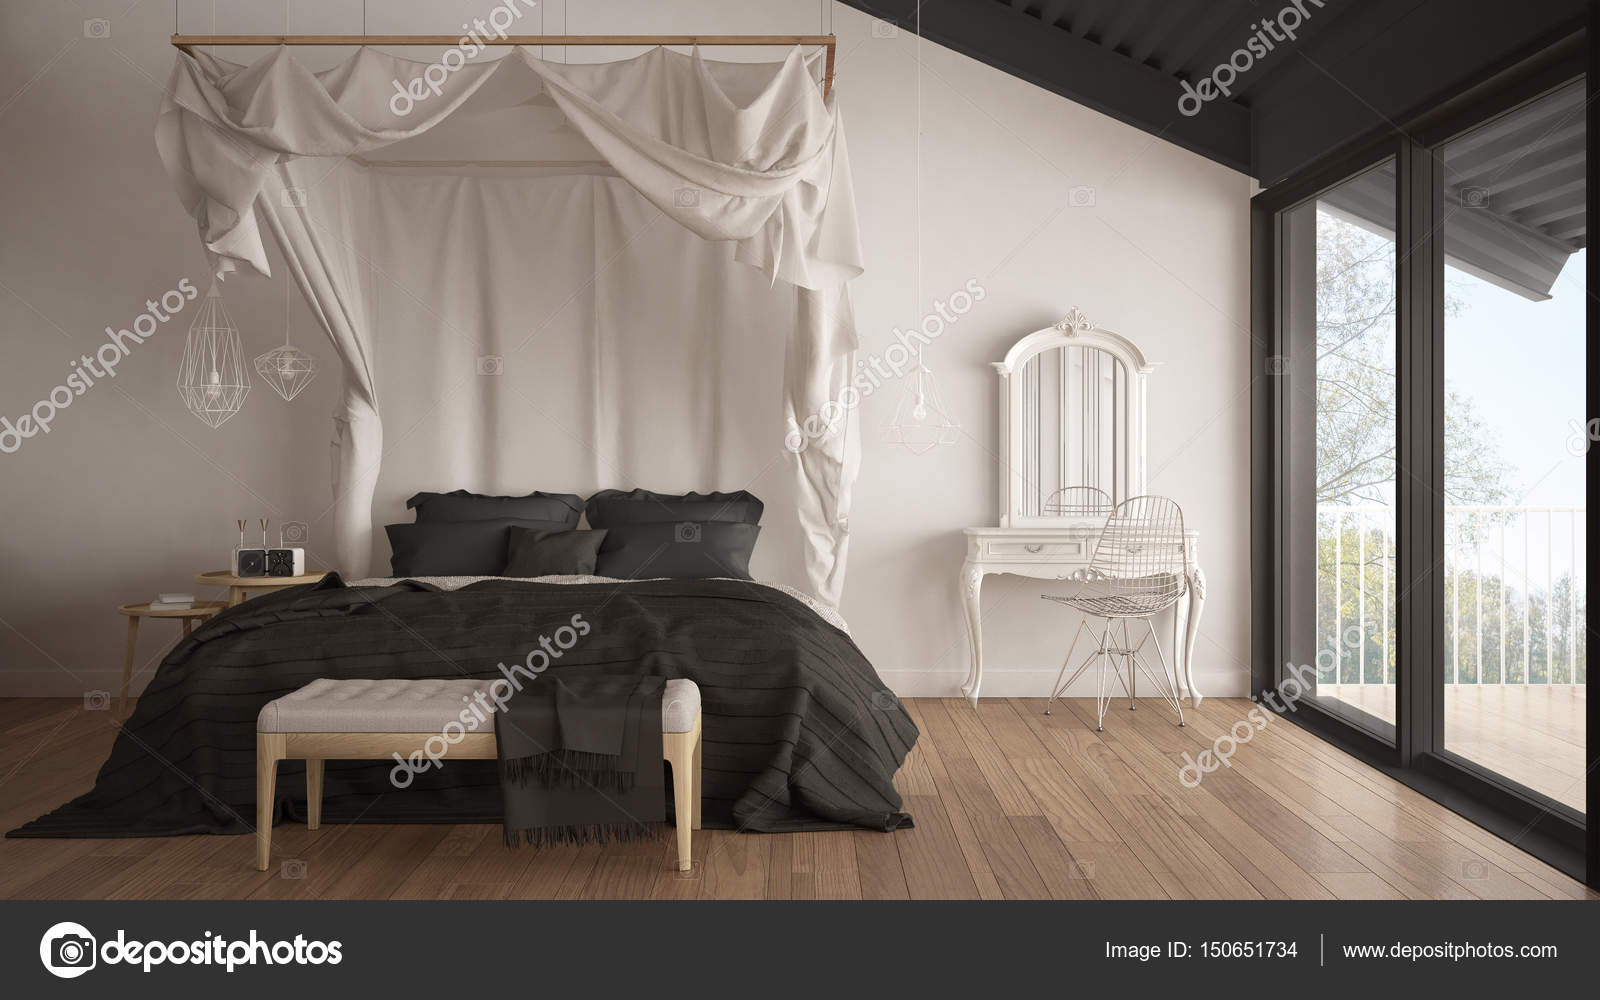 Canopy bed in minimalistic white and gray bedroom with big windou2013 stock image & Canopy bed in minimalistic white and gray bedroom with big windo ...